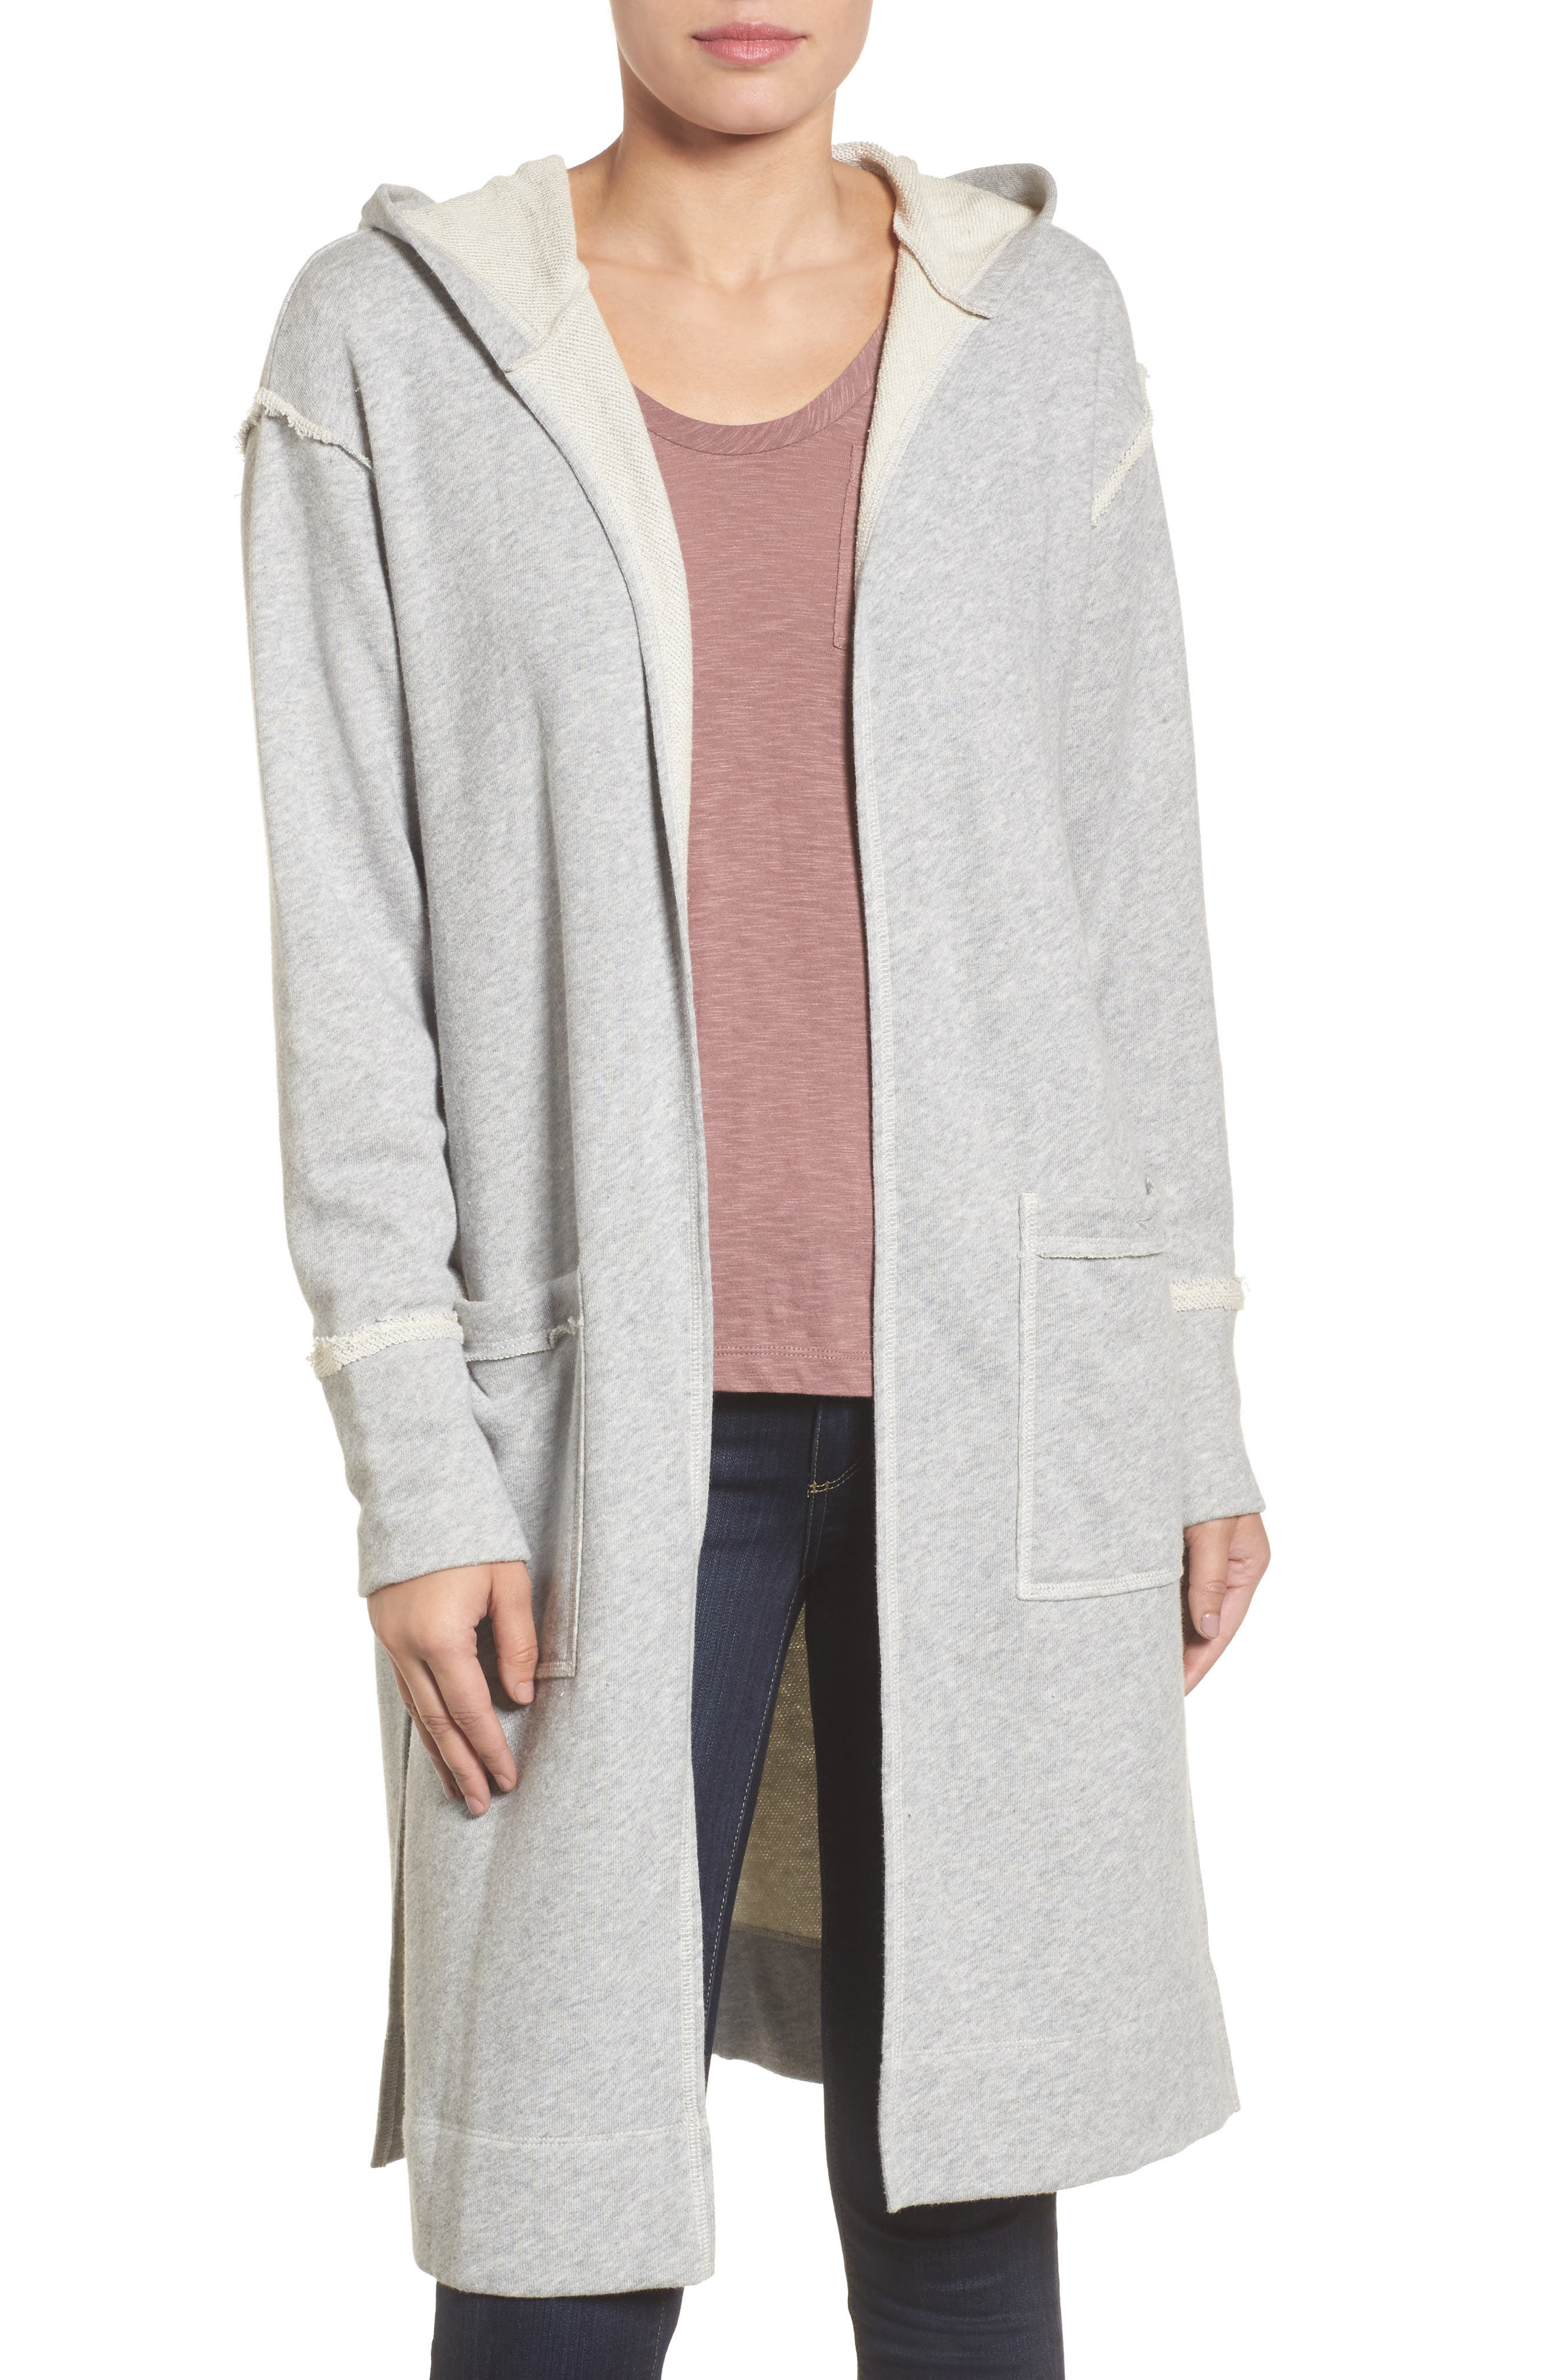 Hooded Long Cardigan,                         Main,                         color, Grey Heather